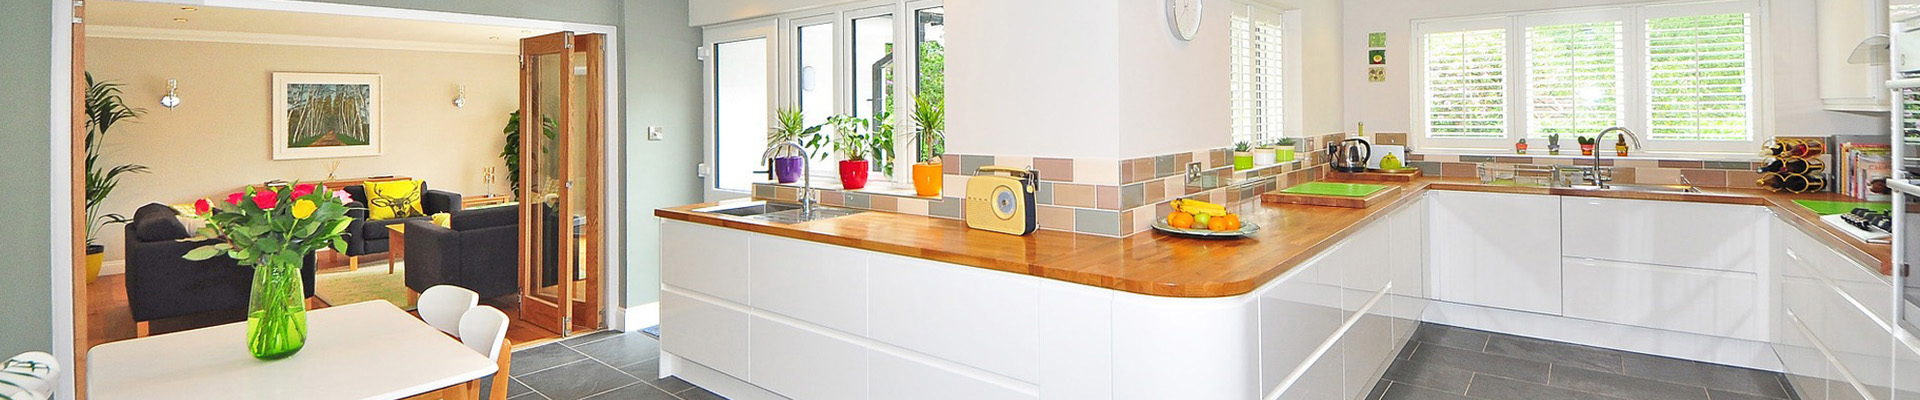 Home Improvements  - Builders in Buntingford, Ware and Bishop's Stortford